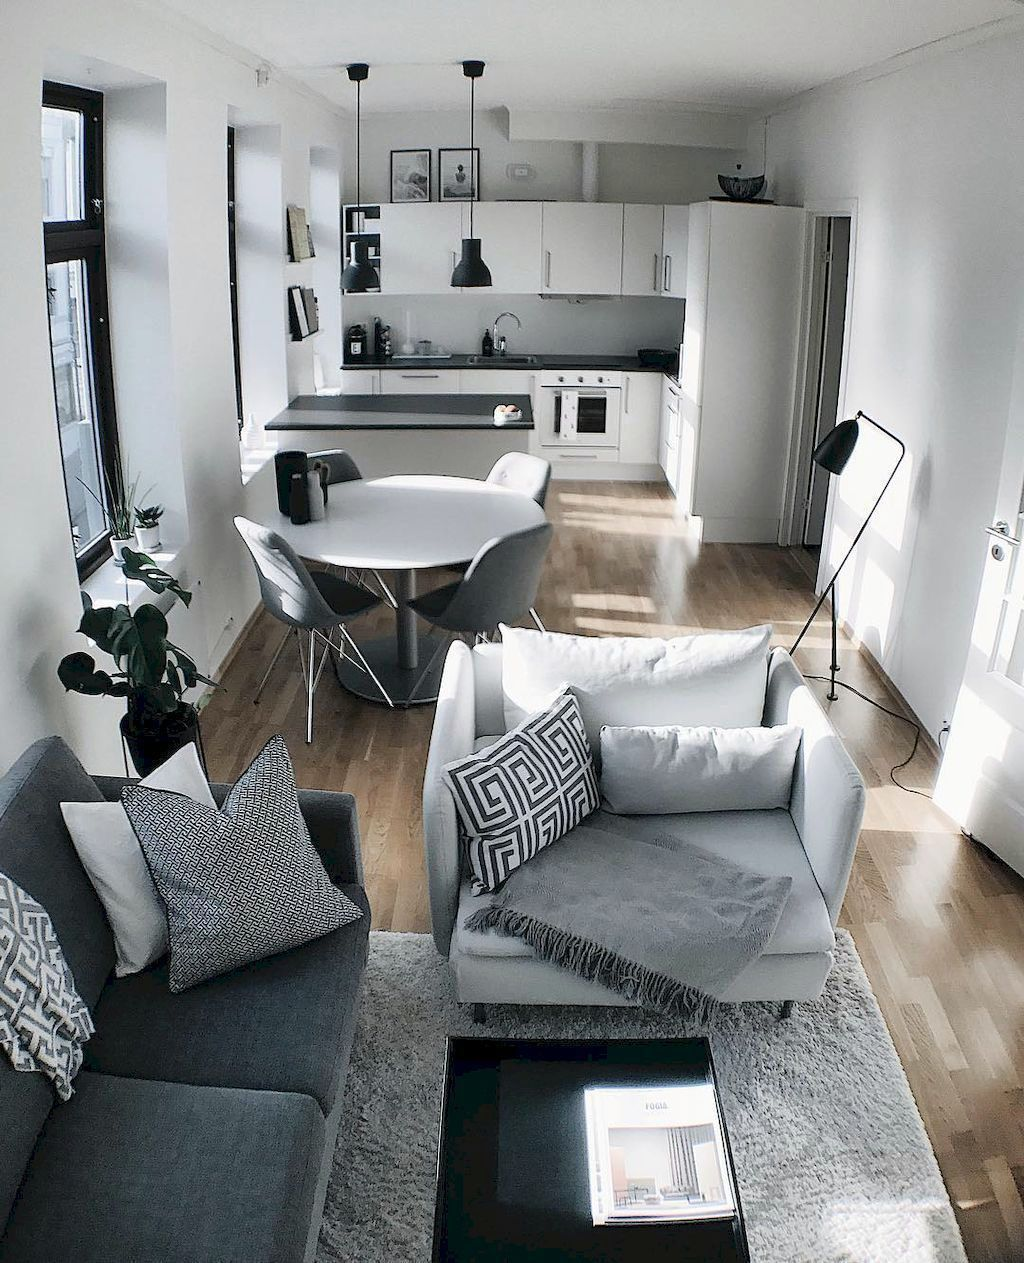 Tiny Residing Space Ideas Just How To Adorn A Cosy And Also Small Resting Snug Lobby Or Even Area Apartment Decor Inspiration Small Apartment Living Room Small Apartment Decorating